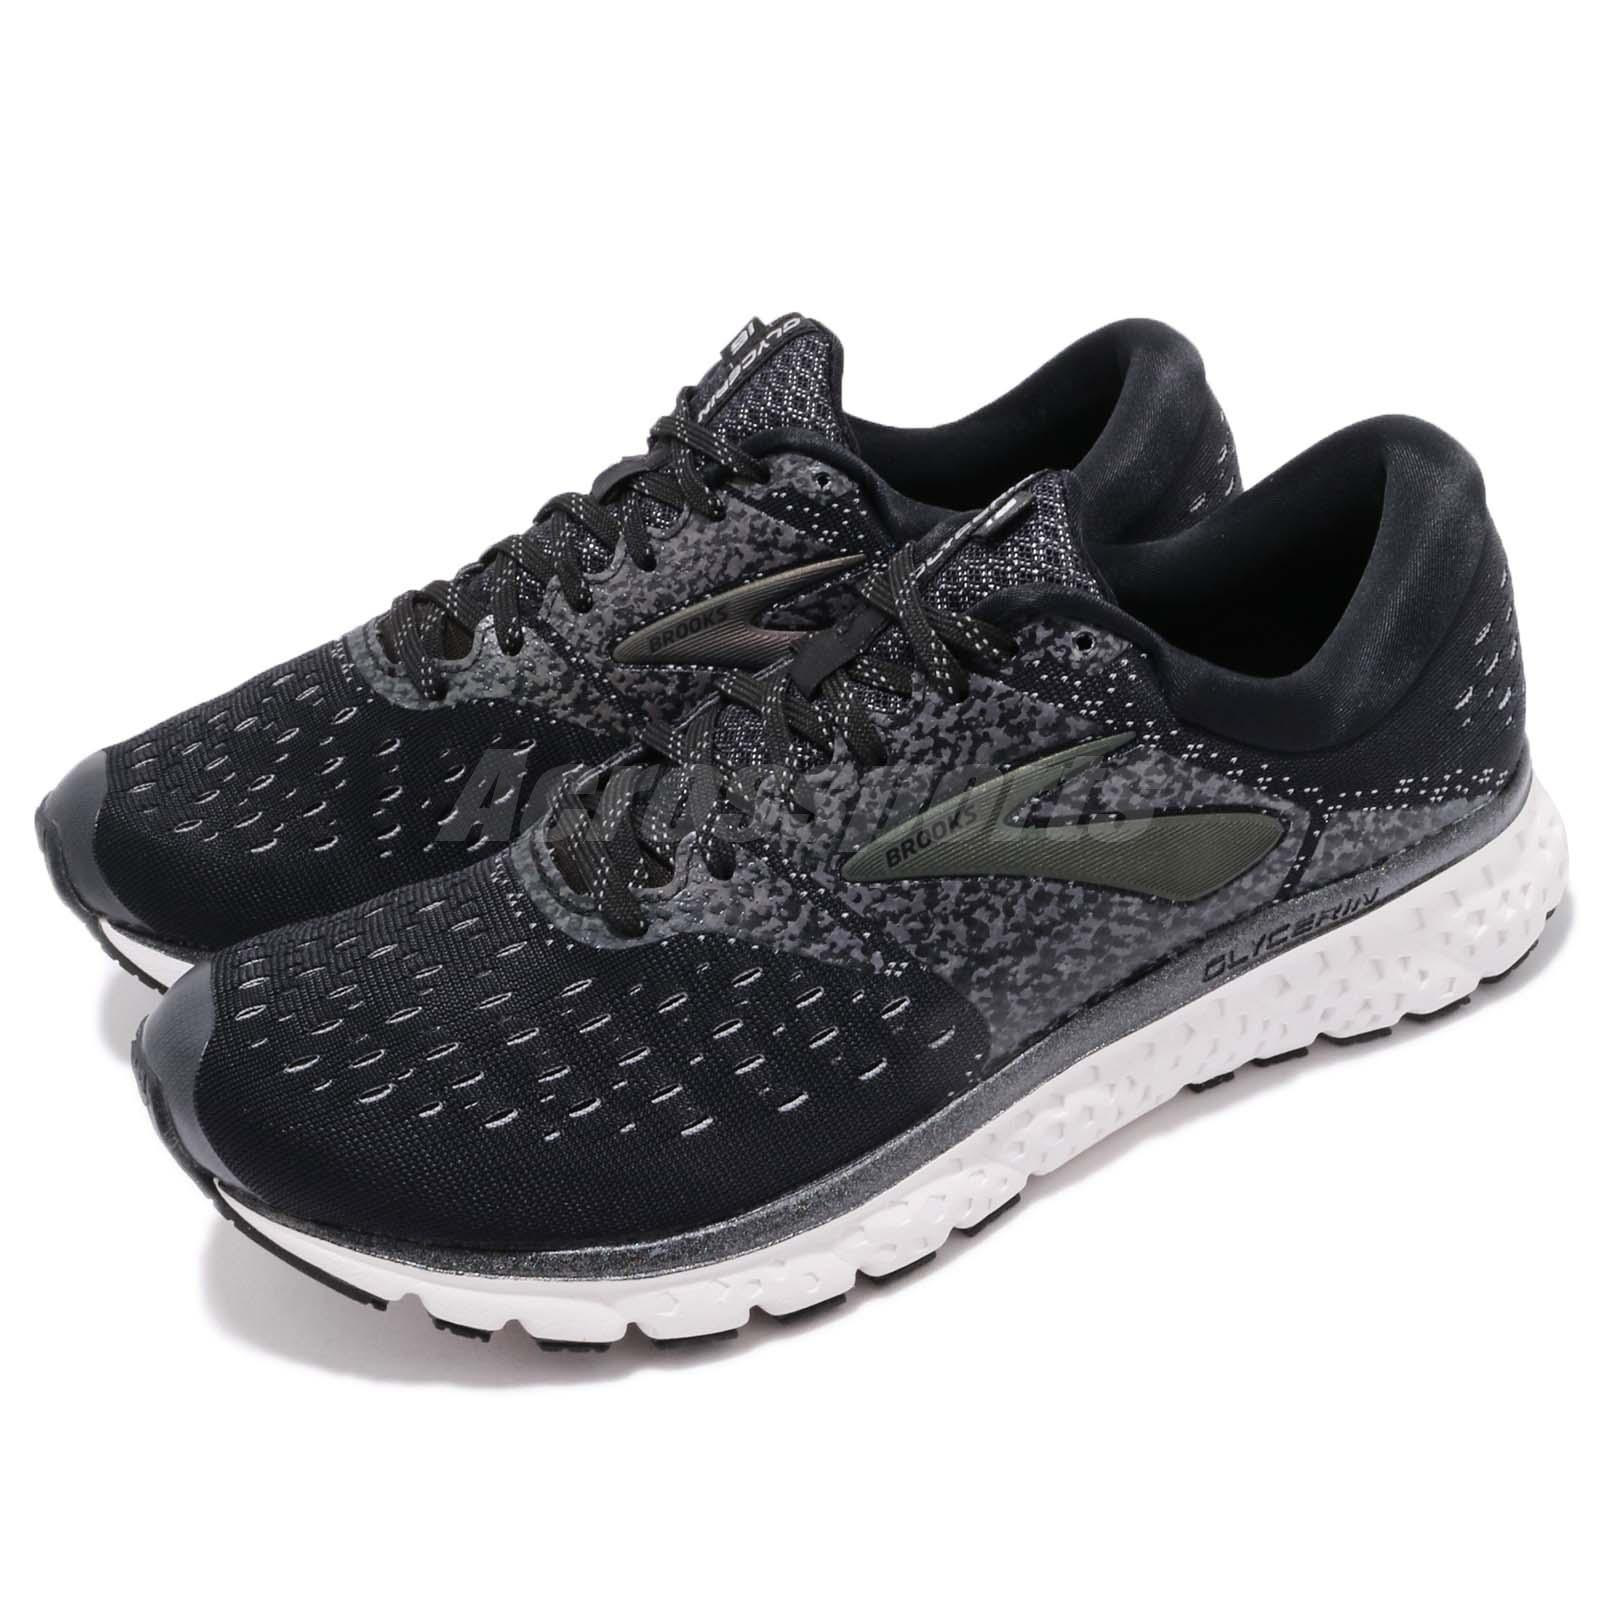 9e2632eb1bee0 Details about Brooks Glycerin 16 Reflective Black White Grey Men Running  Shoes 110289 1D